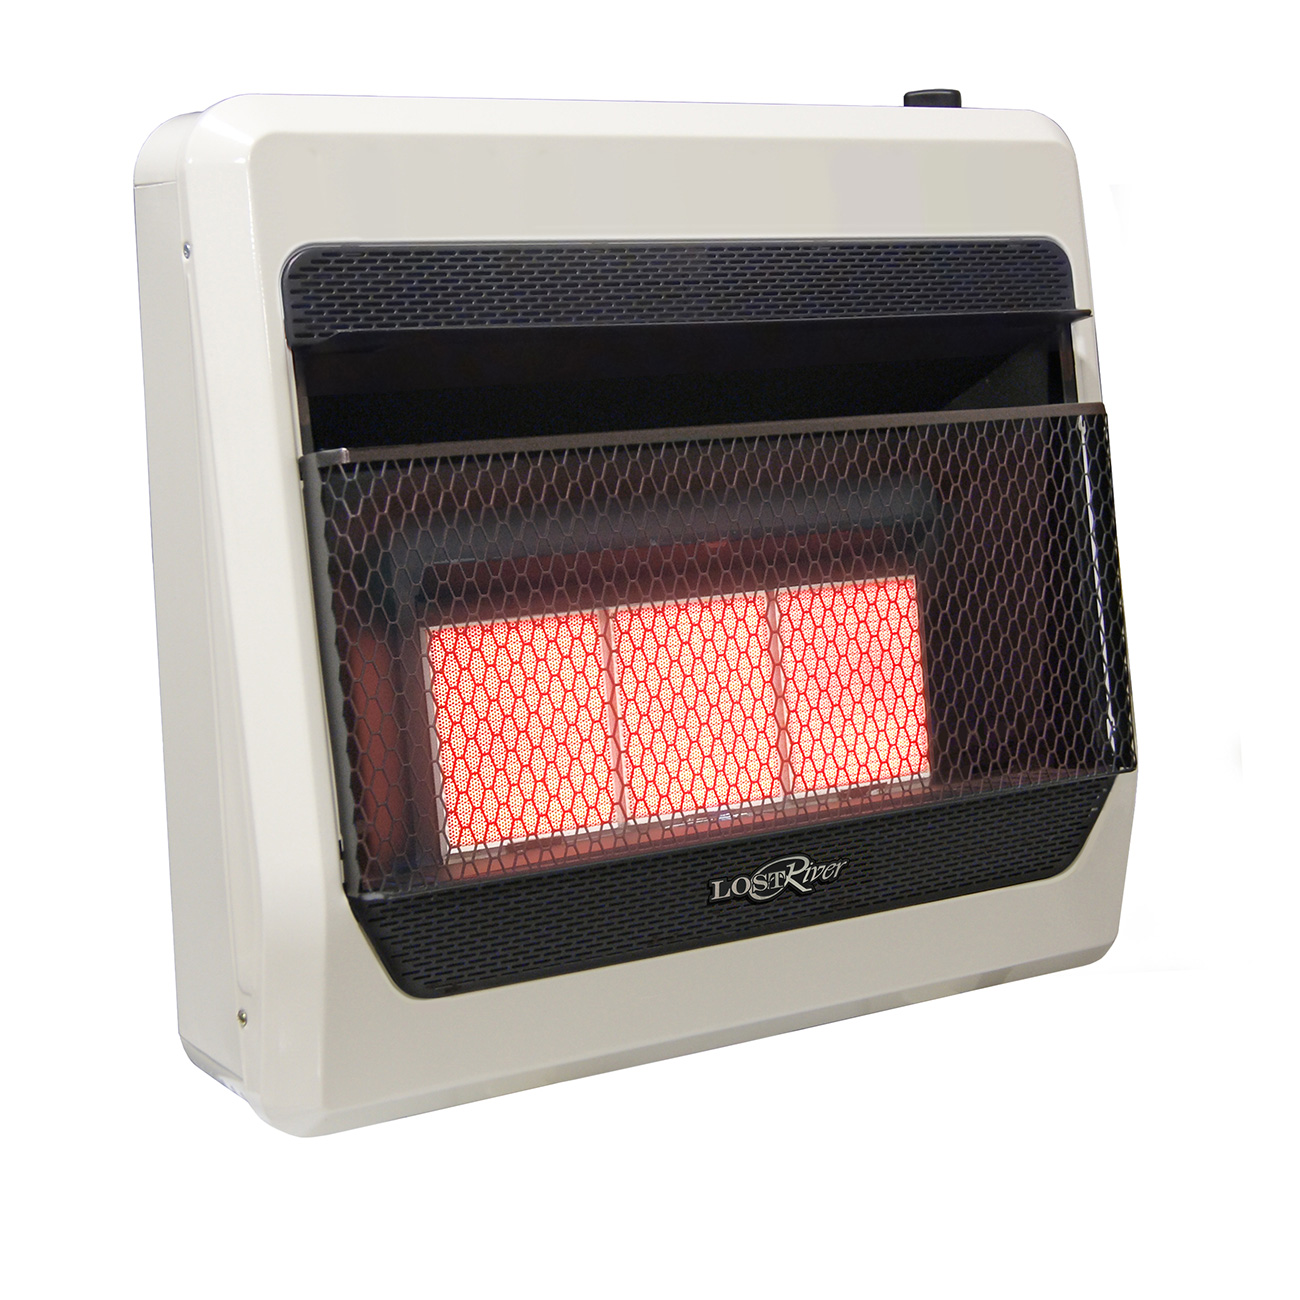 Lost river dual fuel ventless infrared radiant plaque for Radiant heat wall units